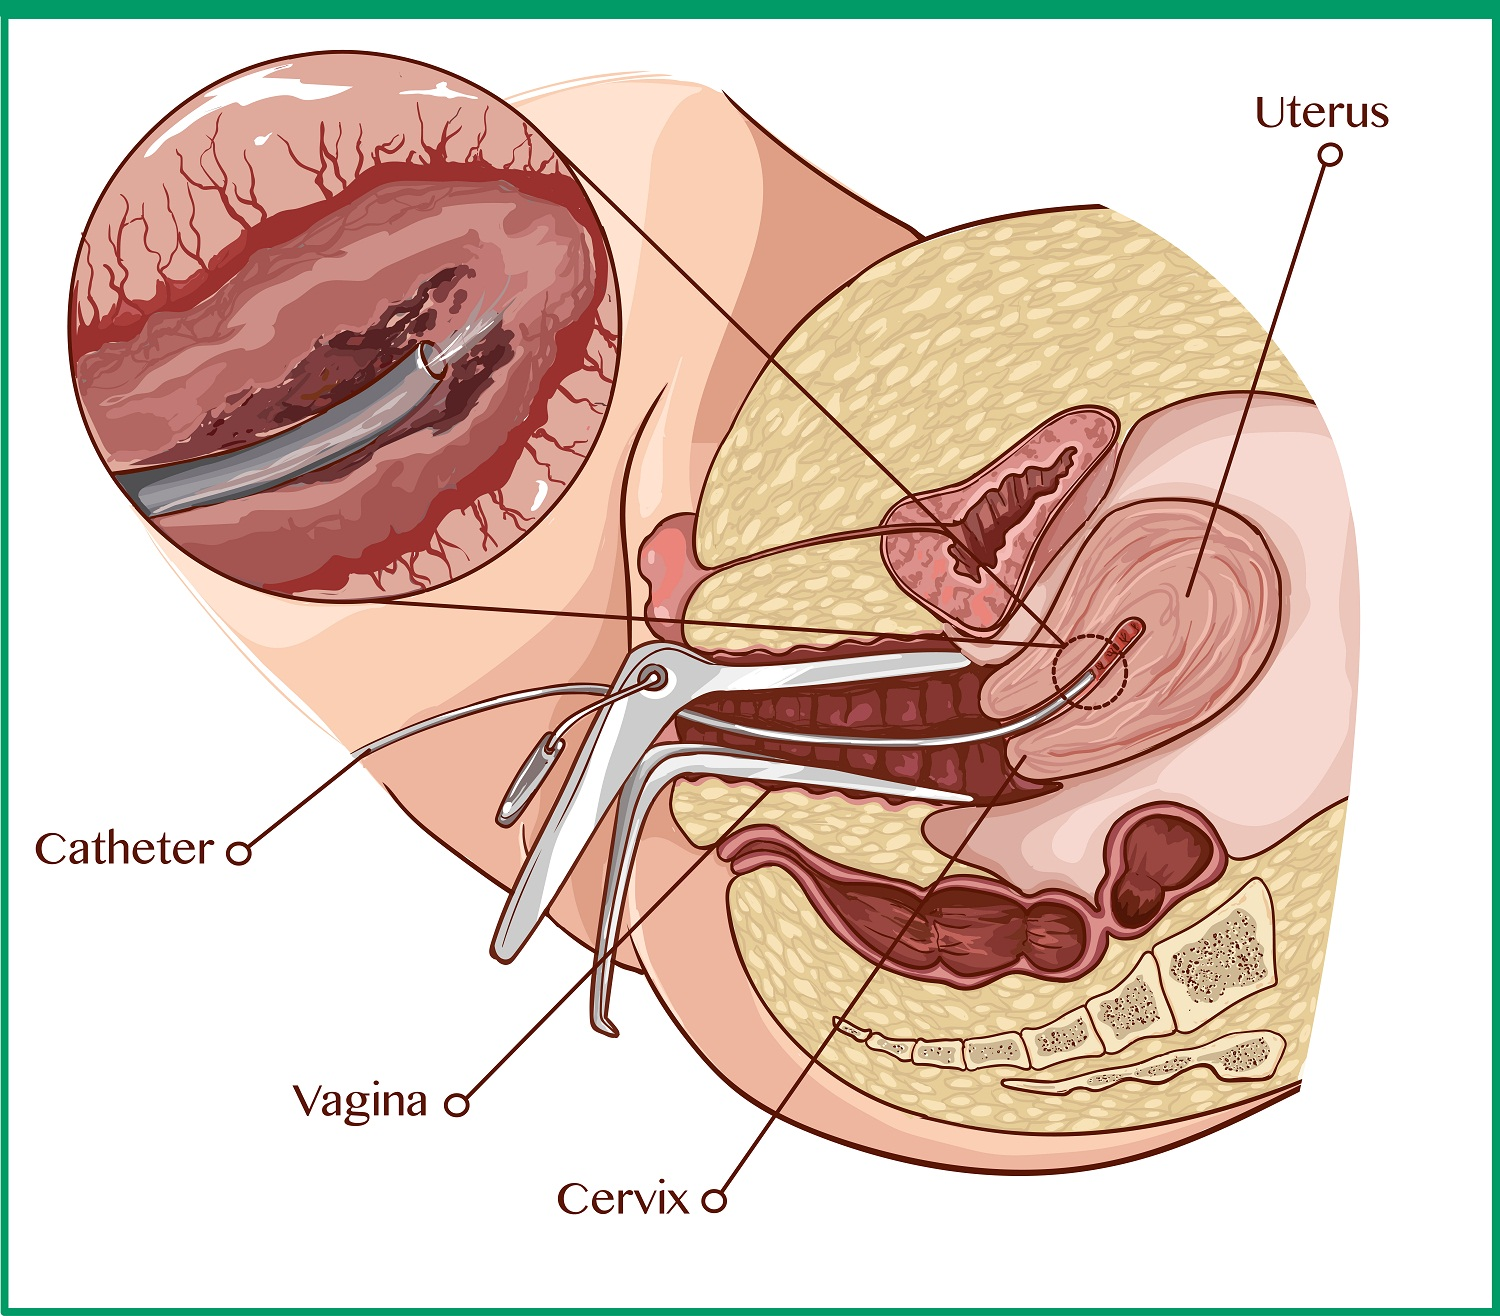 Illustration of an endometrial biopsy